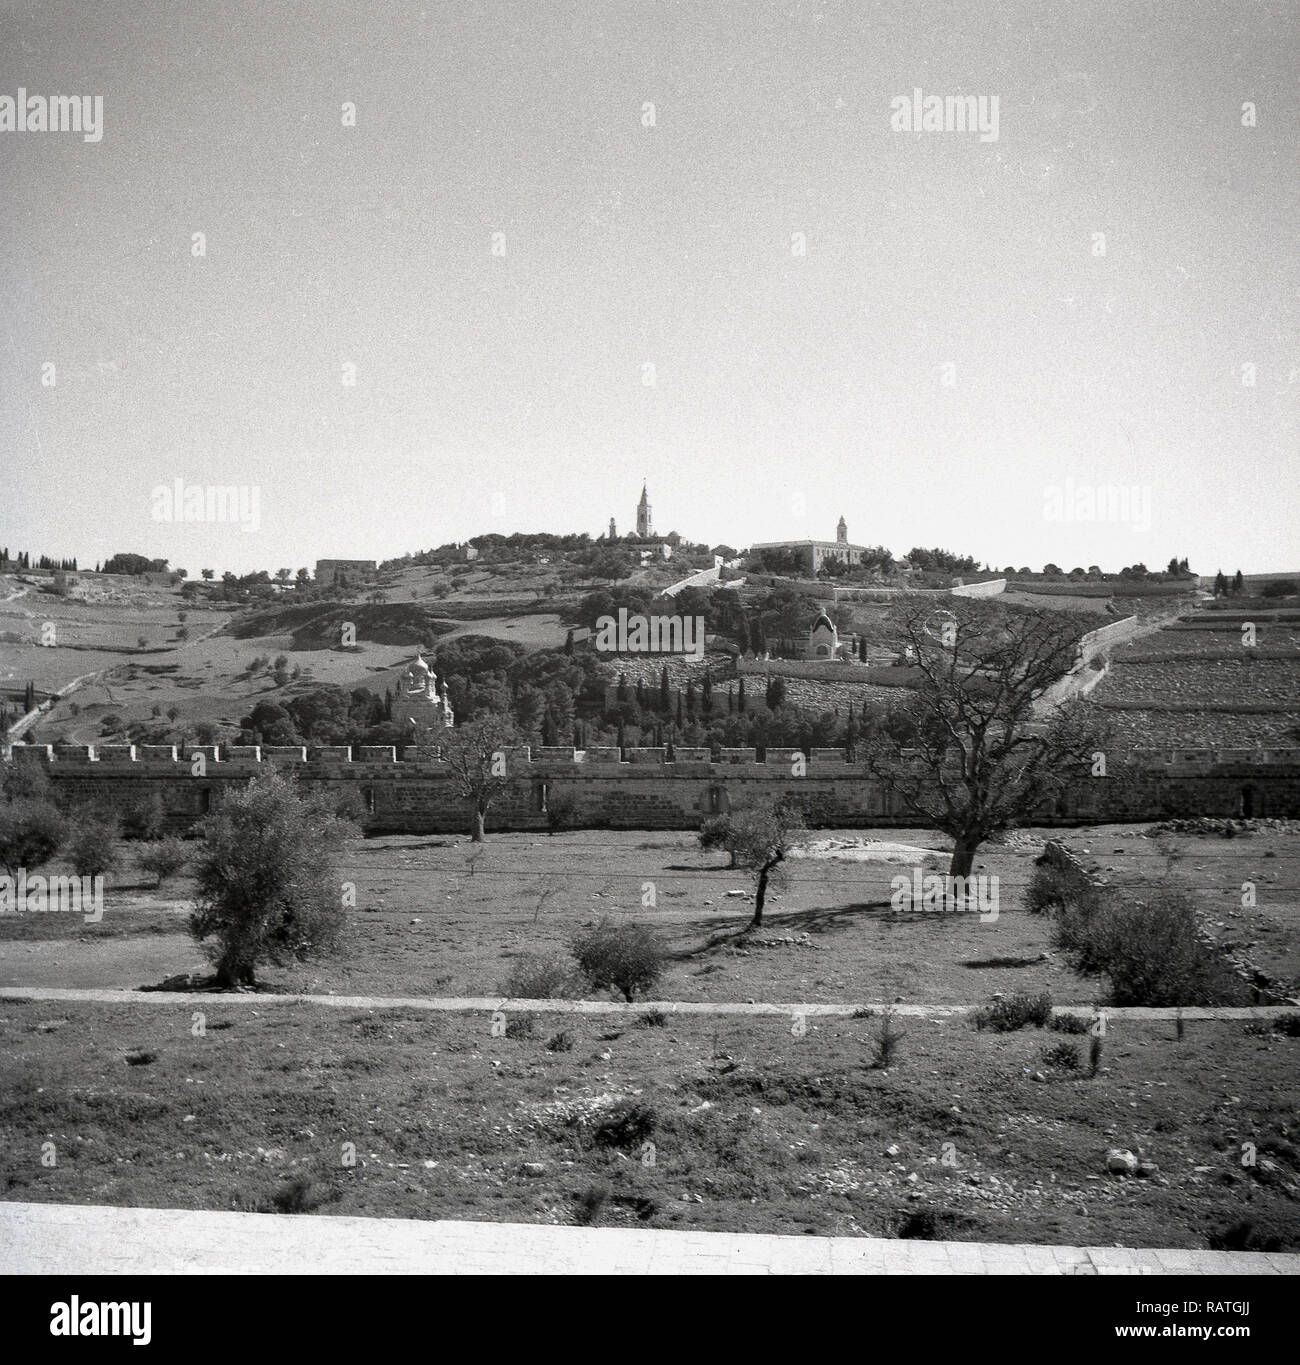 1940s, Jerusalem and 'The Mount of Olives' as seen in this era. The hill or mounain ridge gets its name from the olive groves that covered its slopes and is famous for the many biblical events that have taken place over the centuries. Referenced in both the Old and New testaments of the Bible, the mount is considered a sacred spot and of great religious and cultural  significance. - Stock Image